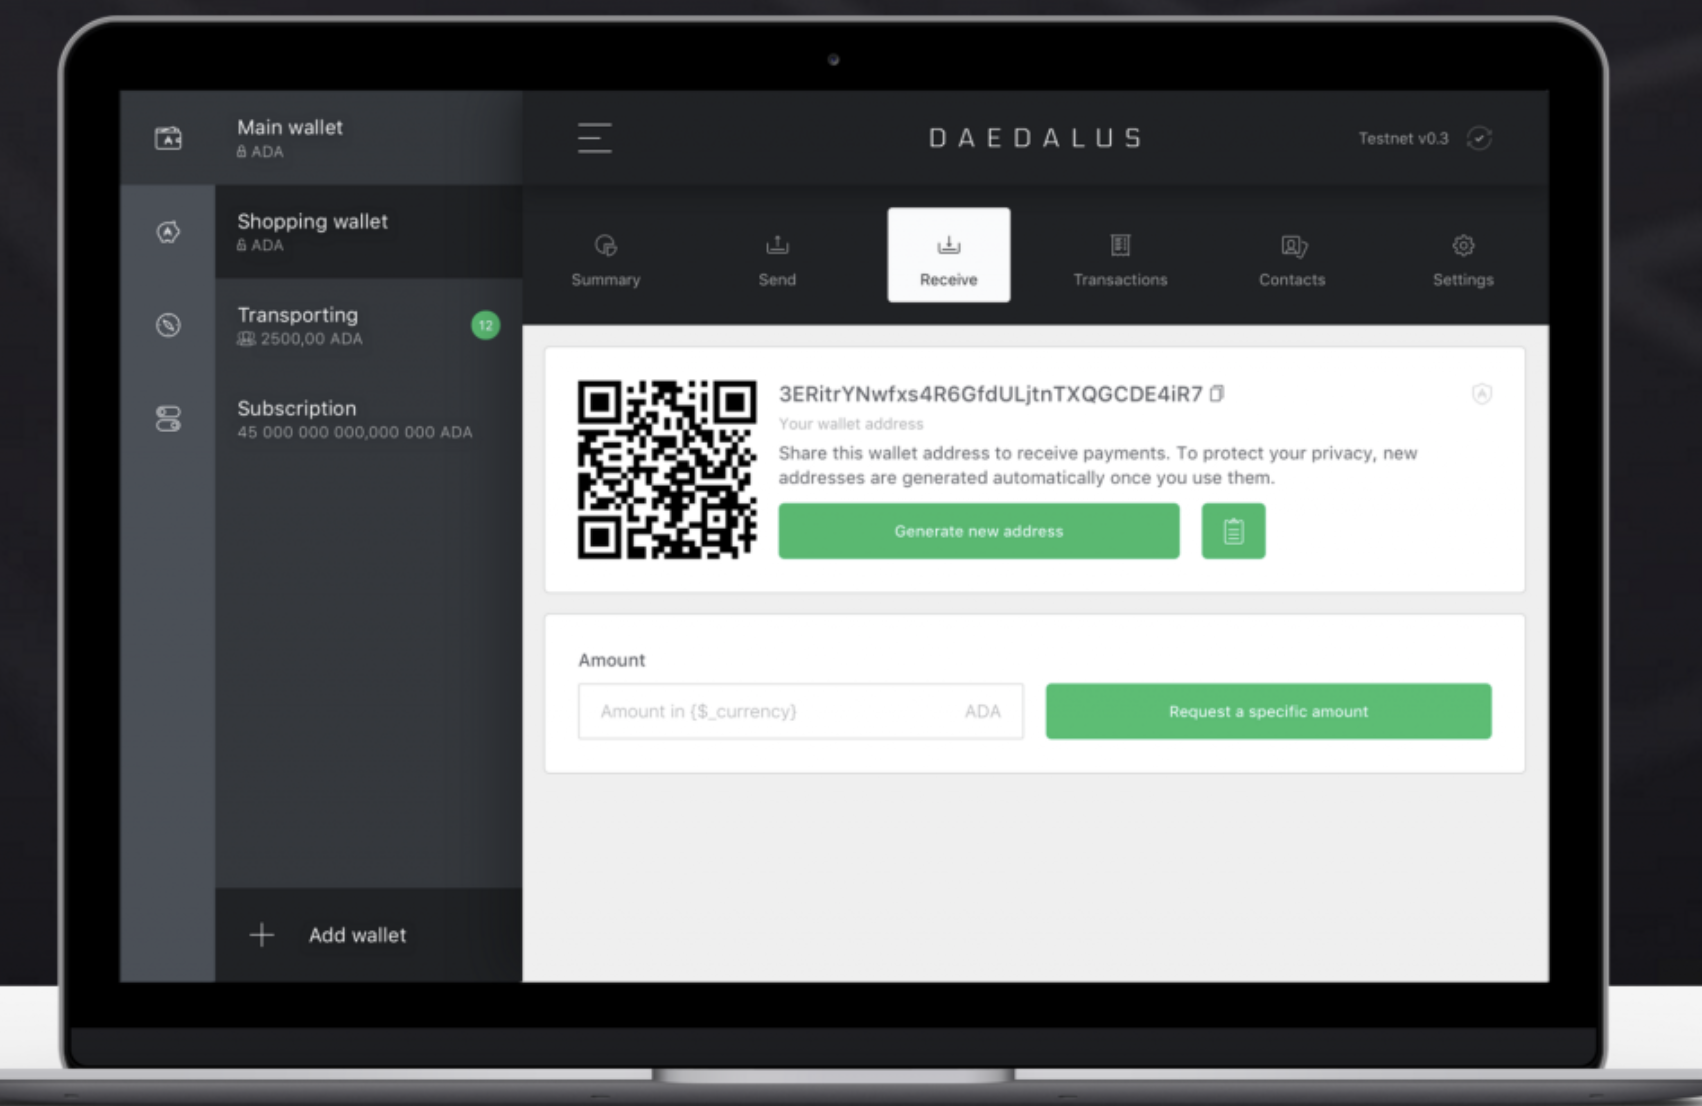 Daedalus deposits and withdrawals